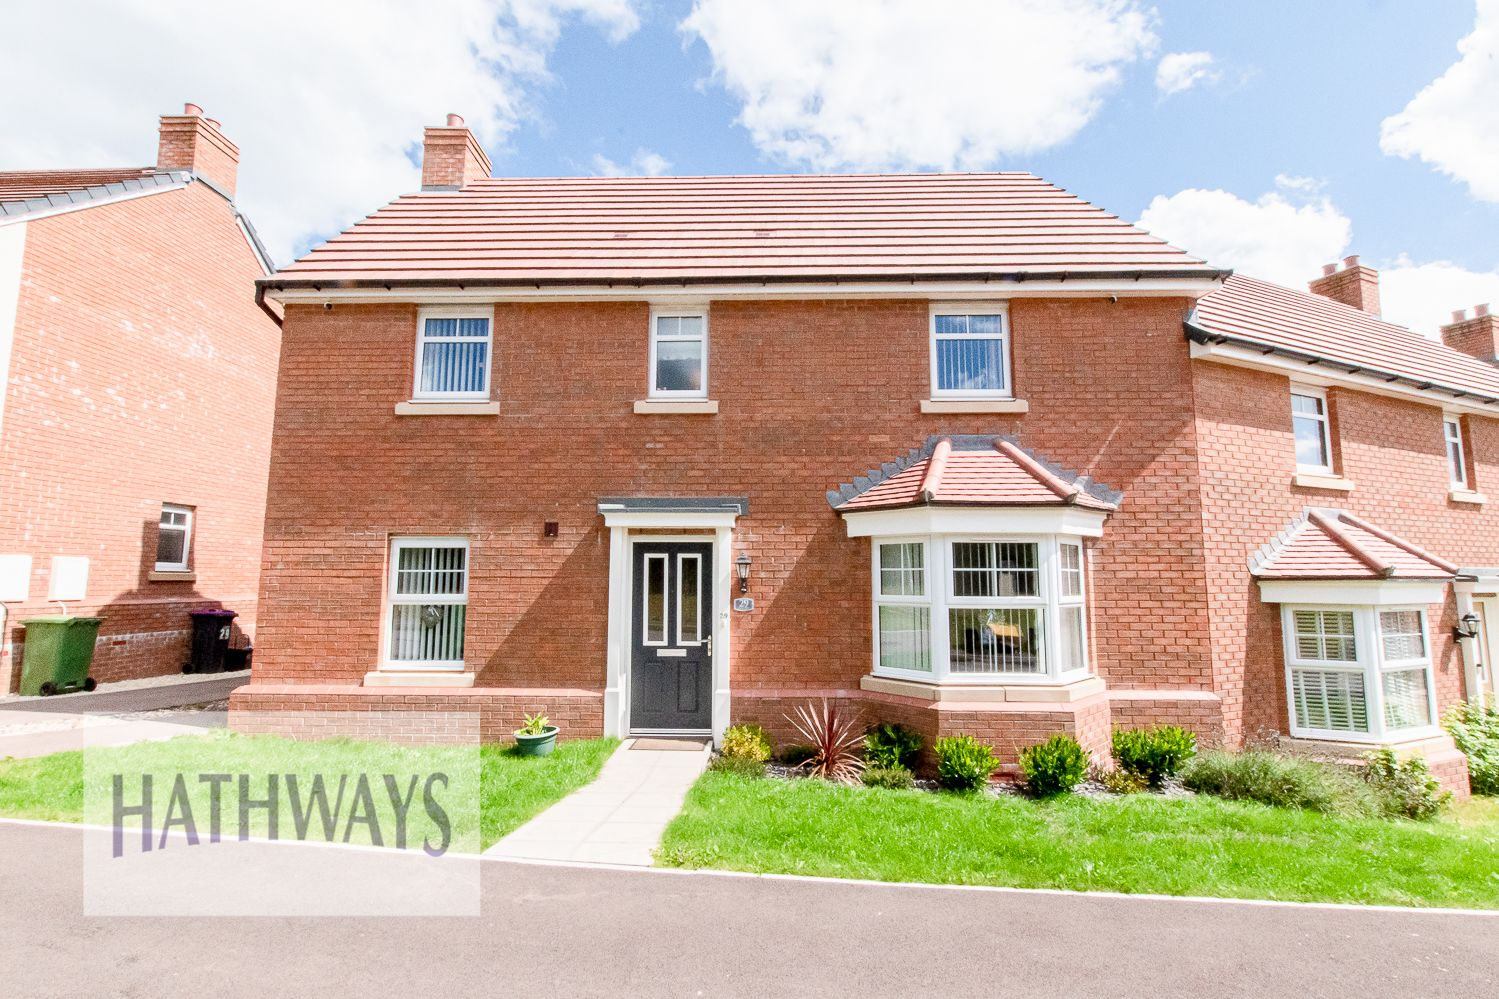 3 bed house for sale in Cwrt Carver, NP44